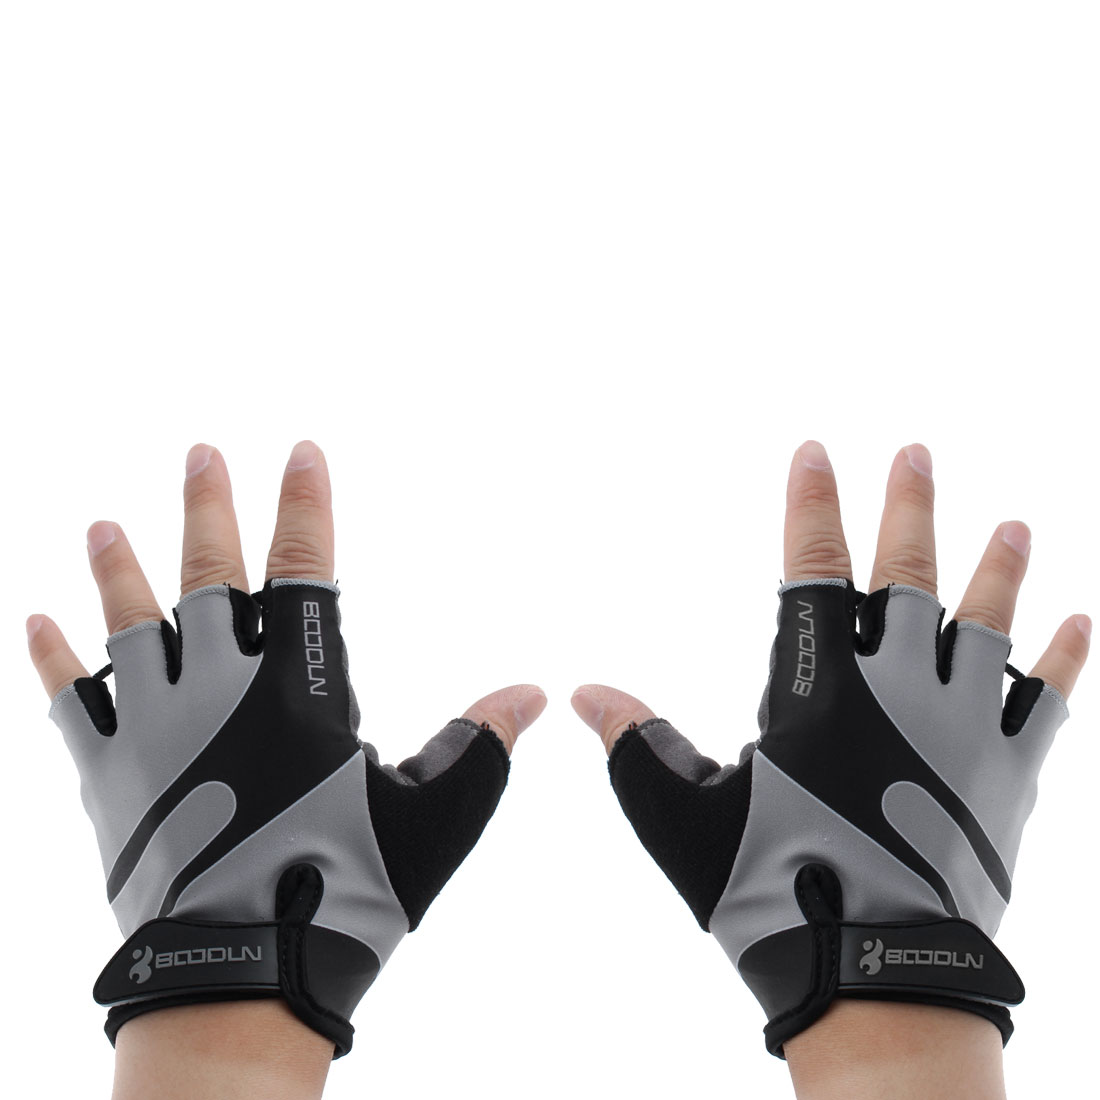 BOODUN Authorized Polyester Exercise Sports Lifting Training Bodybuilding Wrist Protector Half Finger Fitness Gloves Silver Tone S Pair